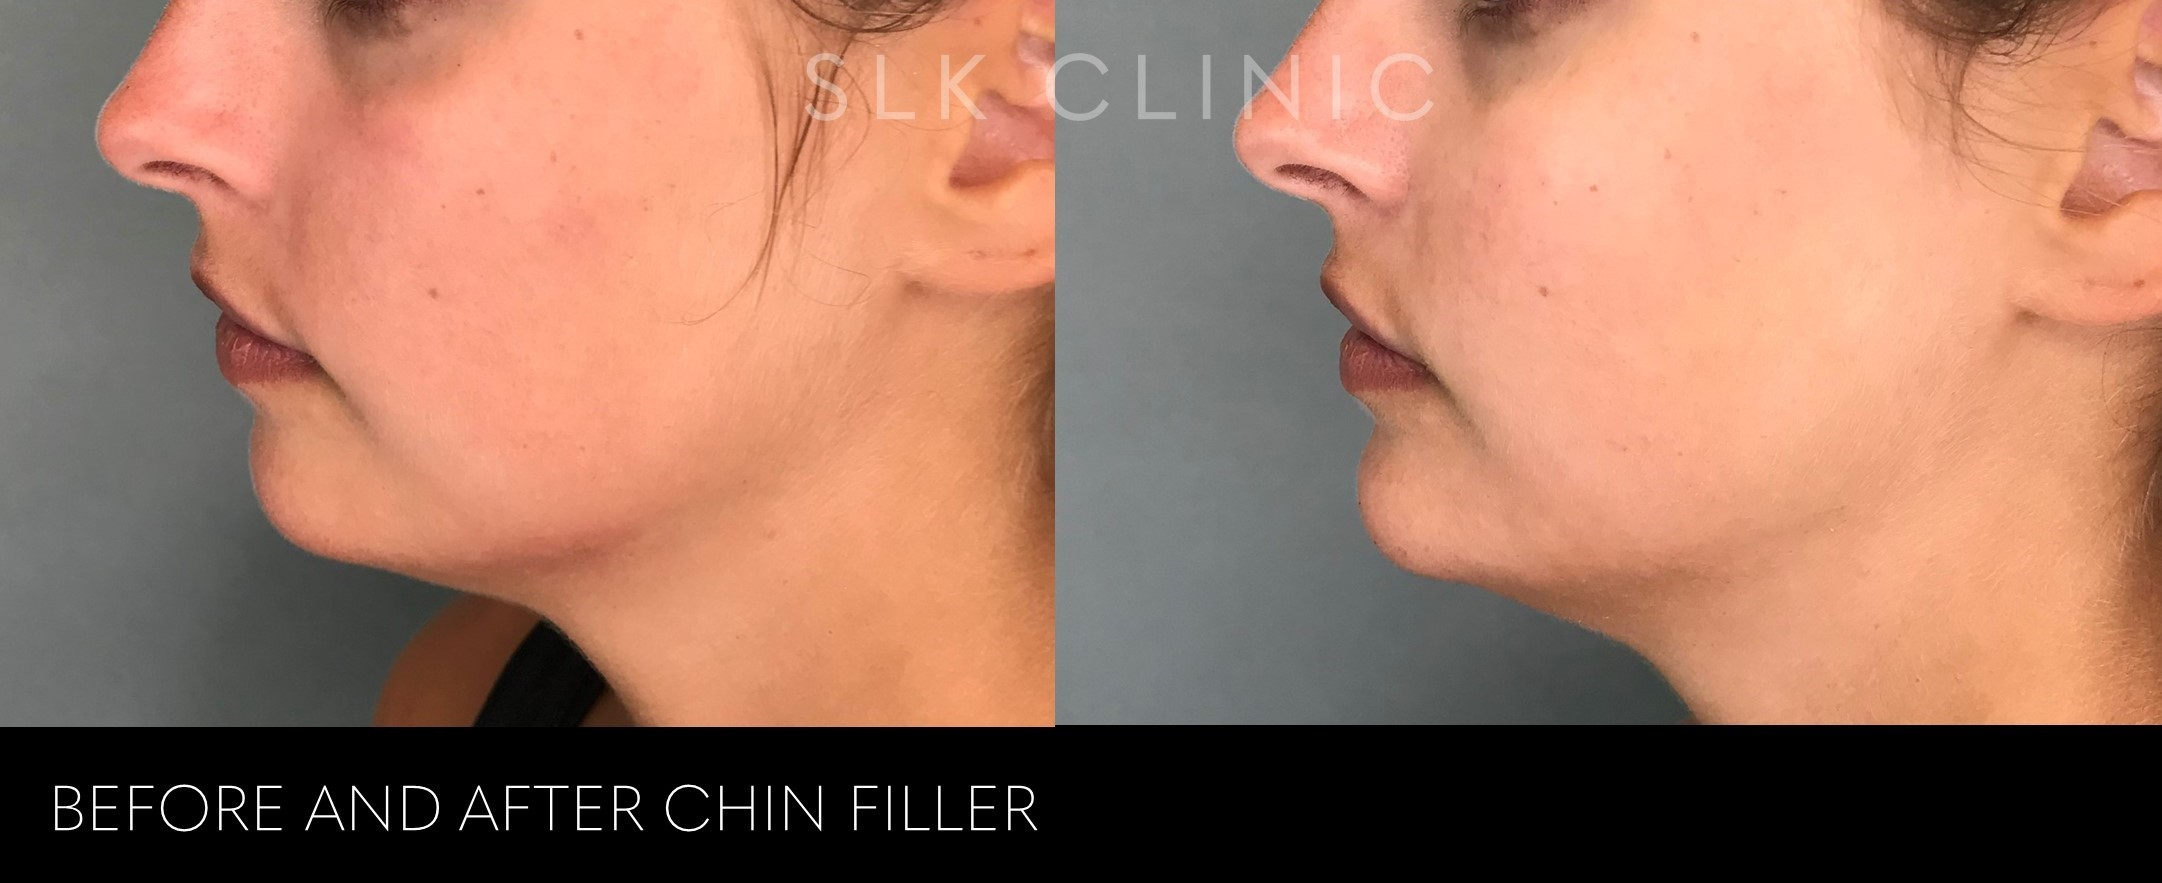 before and after non surgical chin augmentation nashville - with filler